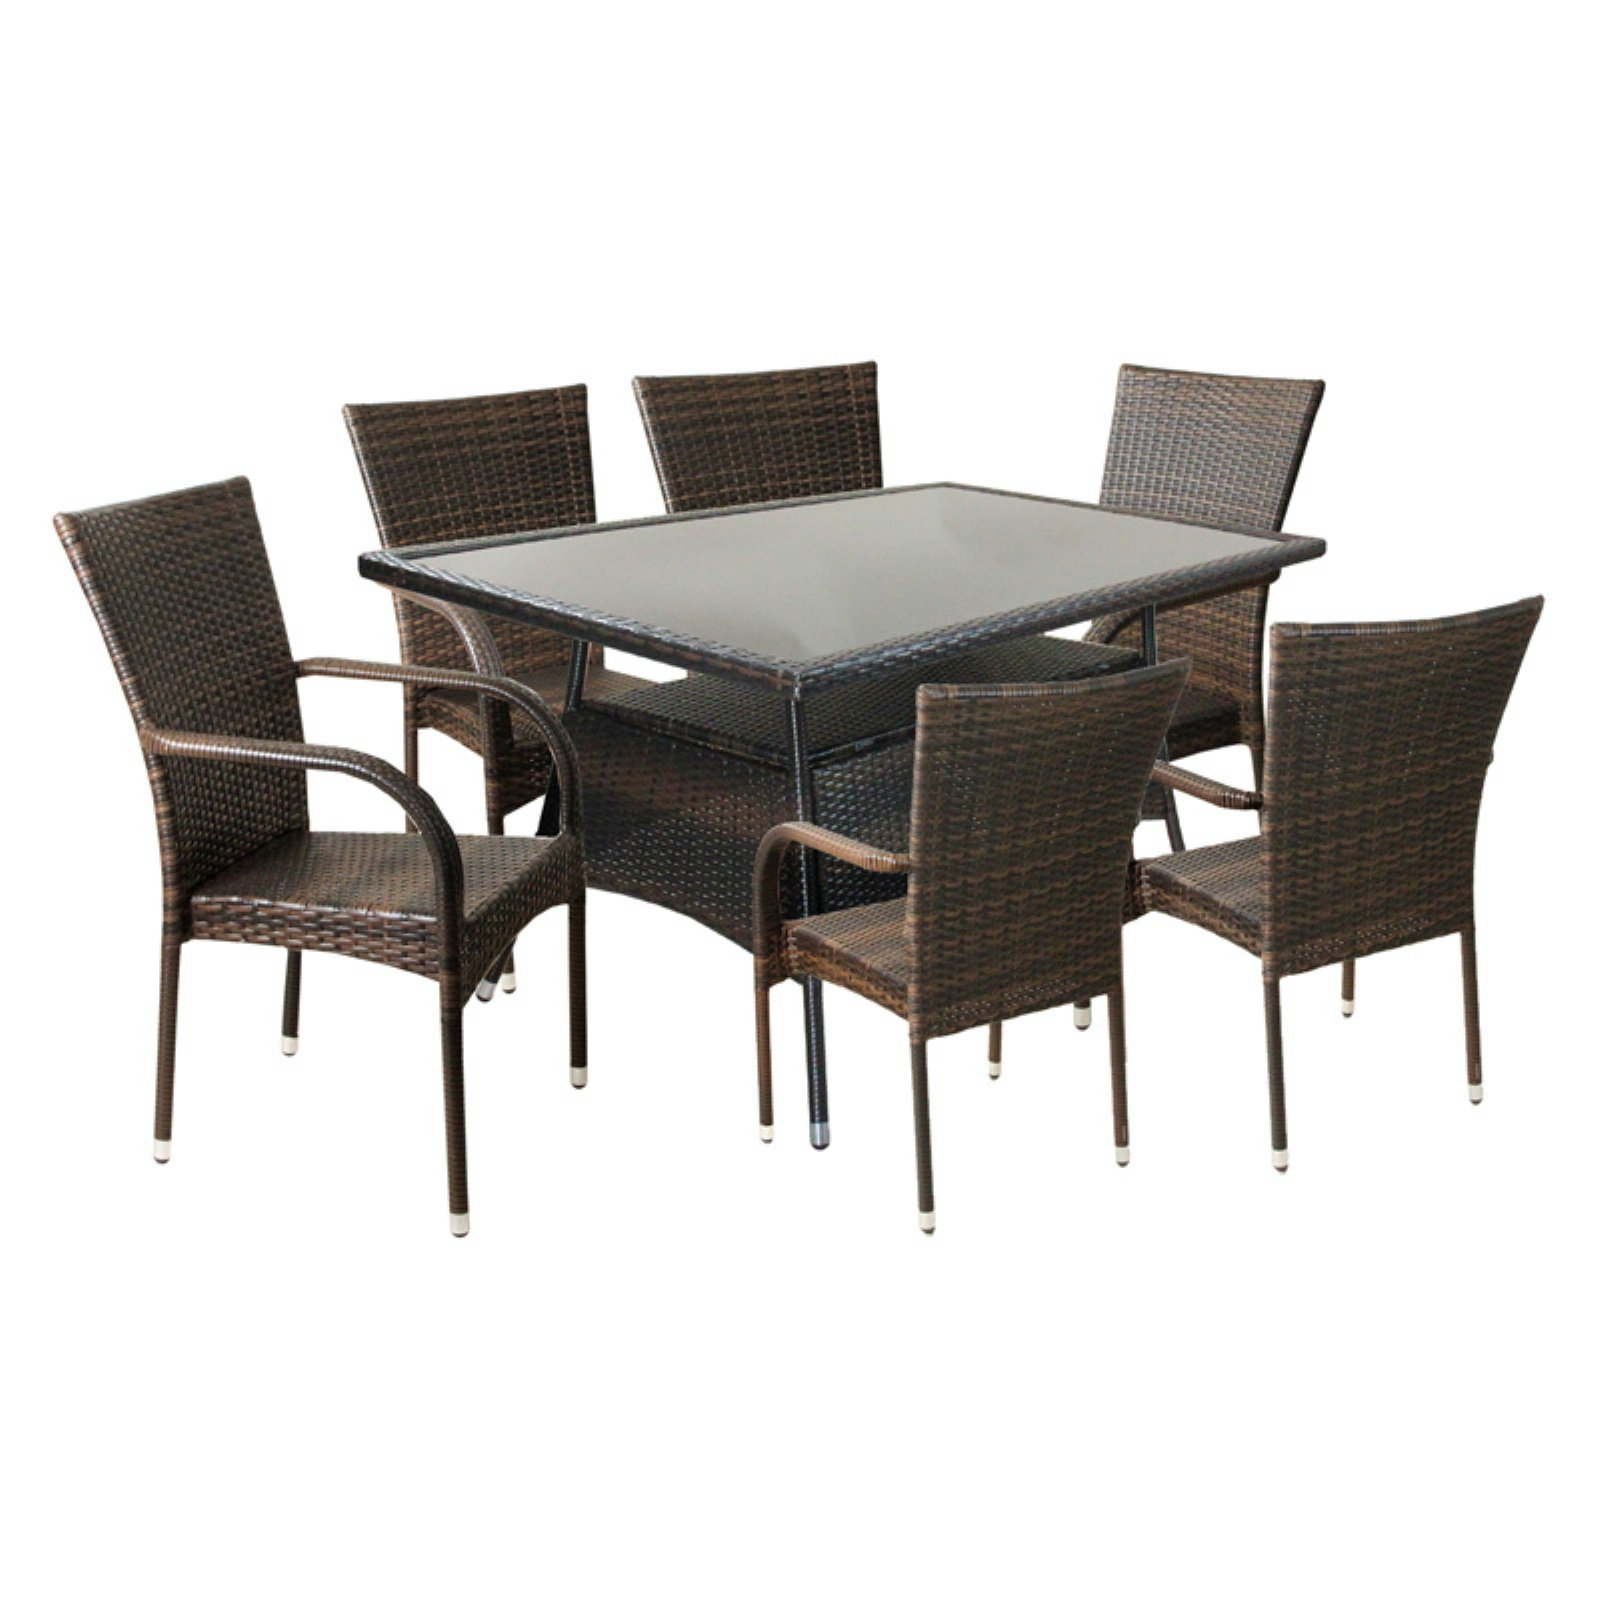 CC Outdoor Living 7 Piece Outdoor Woven Resin Rattan and Steel Rectangle Patio Dining Set